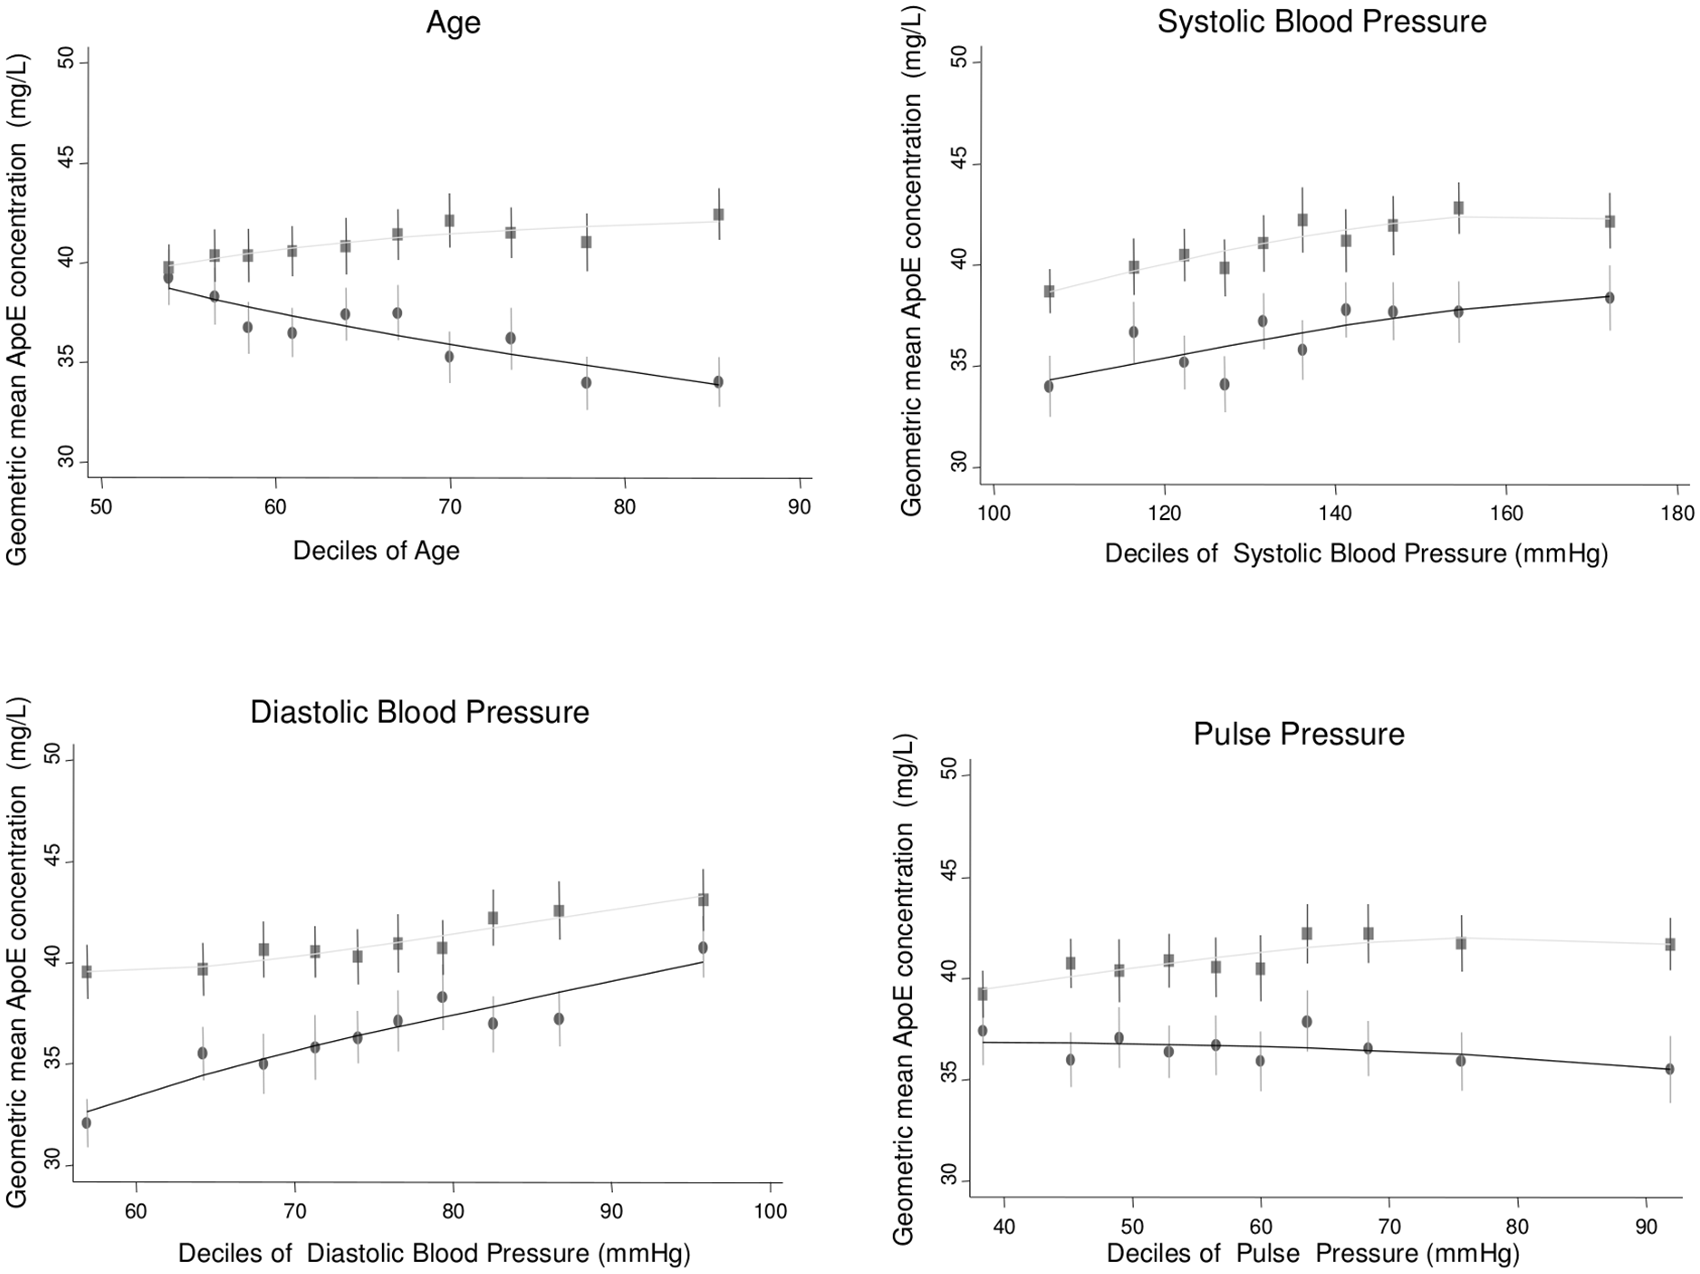 Cross-sectional association between geometric mean of ApoE concentration and age, systolic blood pressure, diastolic blood pressure, and pulse pressure measured in ELSA, by gender.